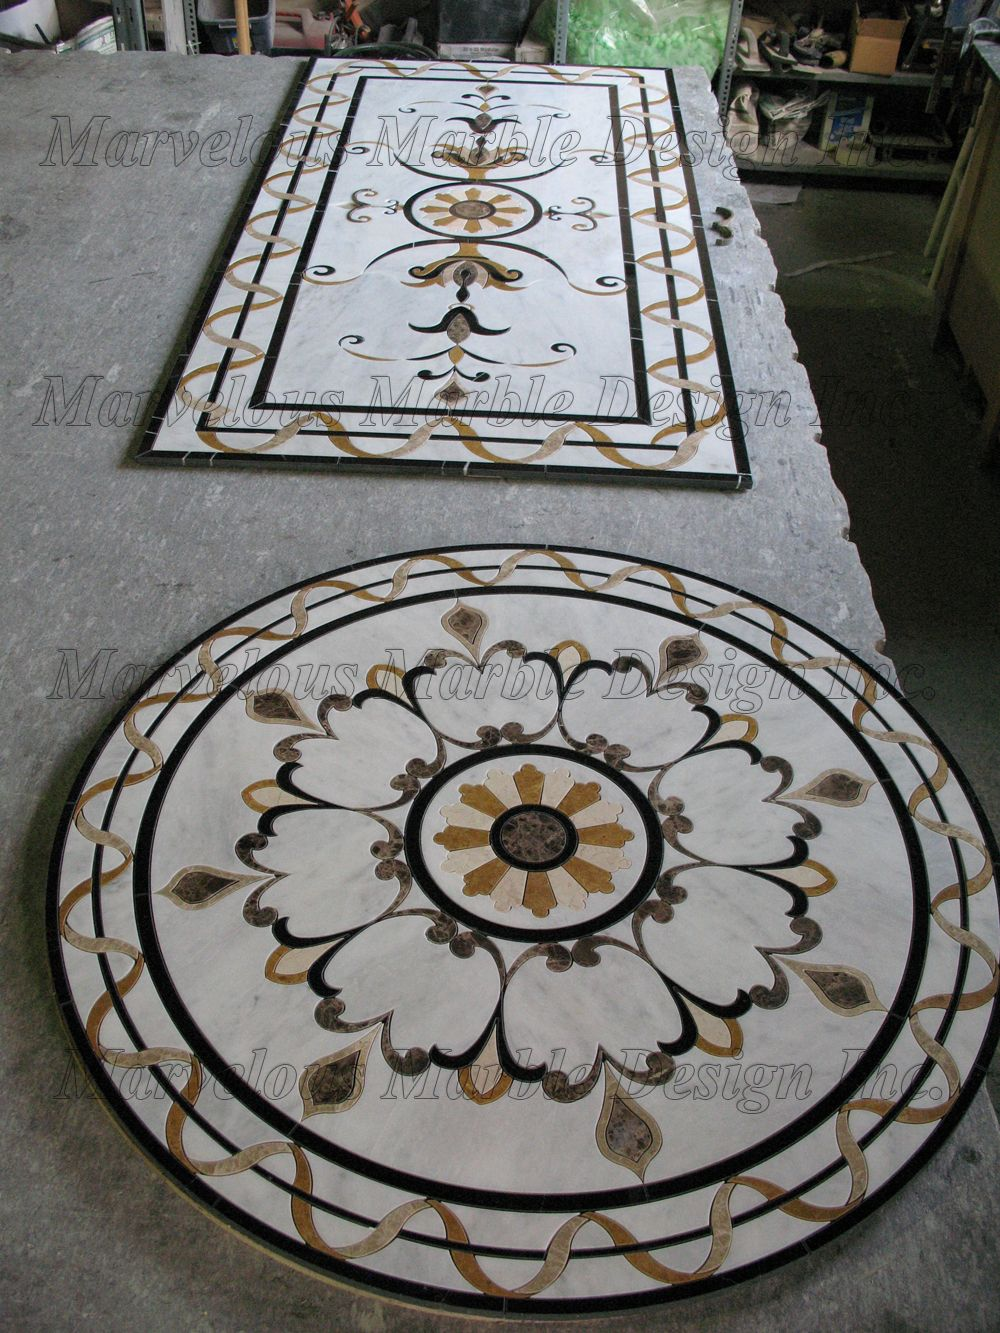 Round marble medallions floors pinterest marbles rounding marble flooring design cutting by cnc water jet machine for luxury new york home by marvelous marble design inc doublecrazyfo Gallery